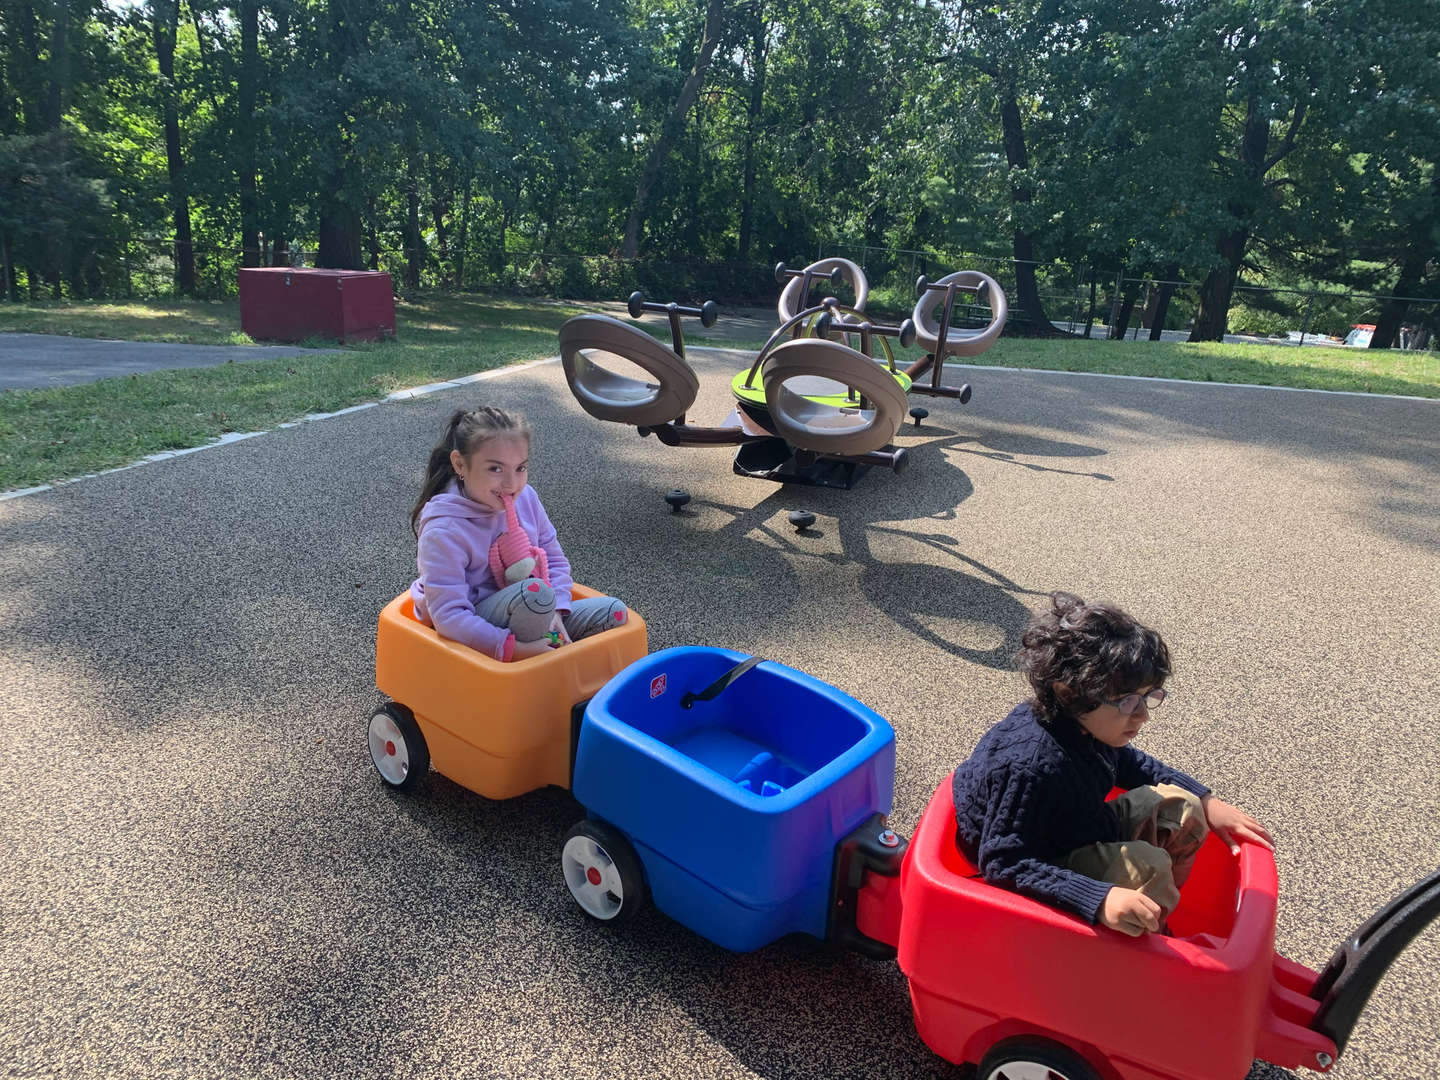 A boy and a girl get a ride in a wagon at Tappan Hill School.